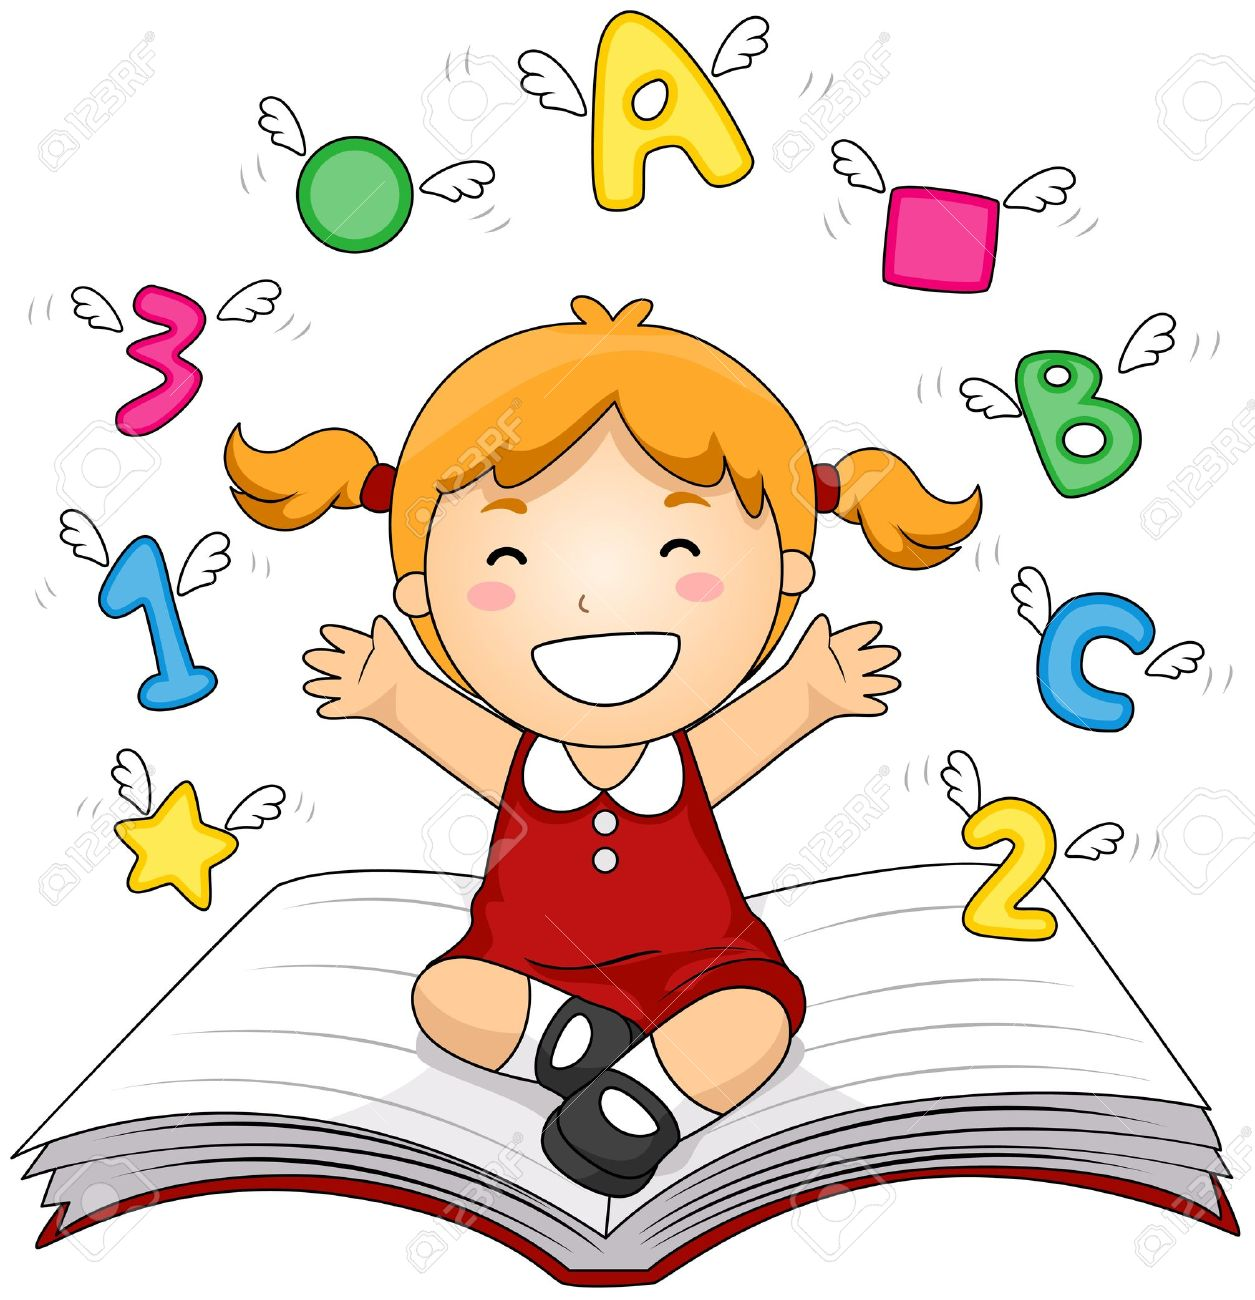 Book clipart education Free Art education%20clipart Images Pictures